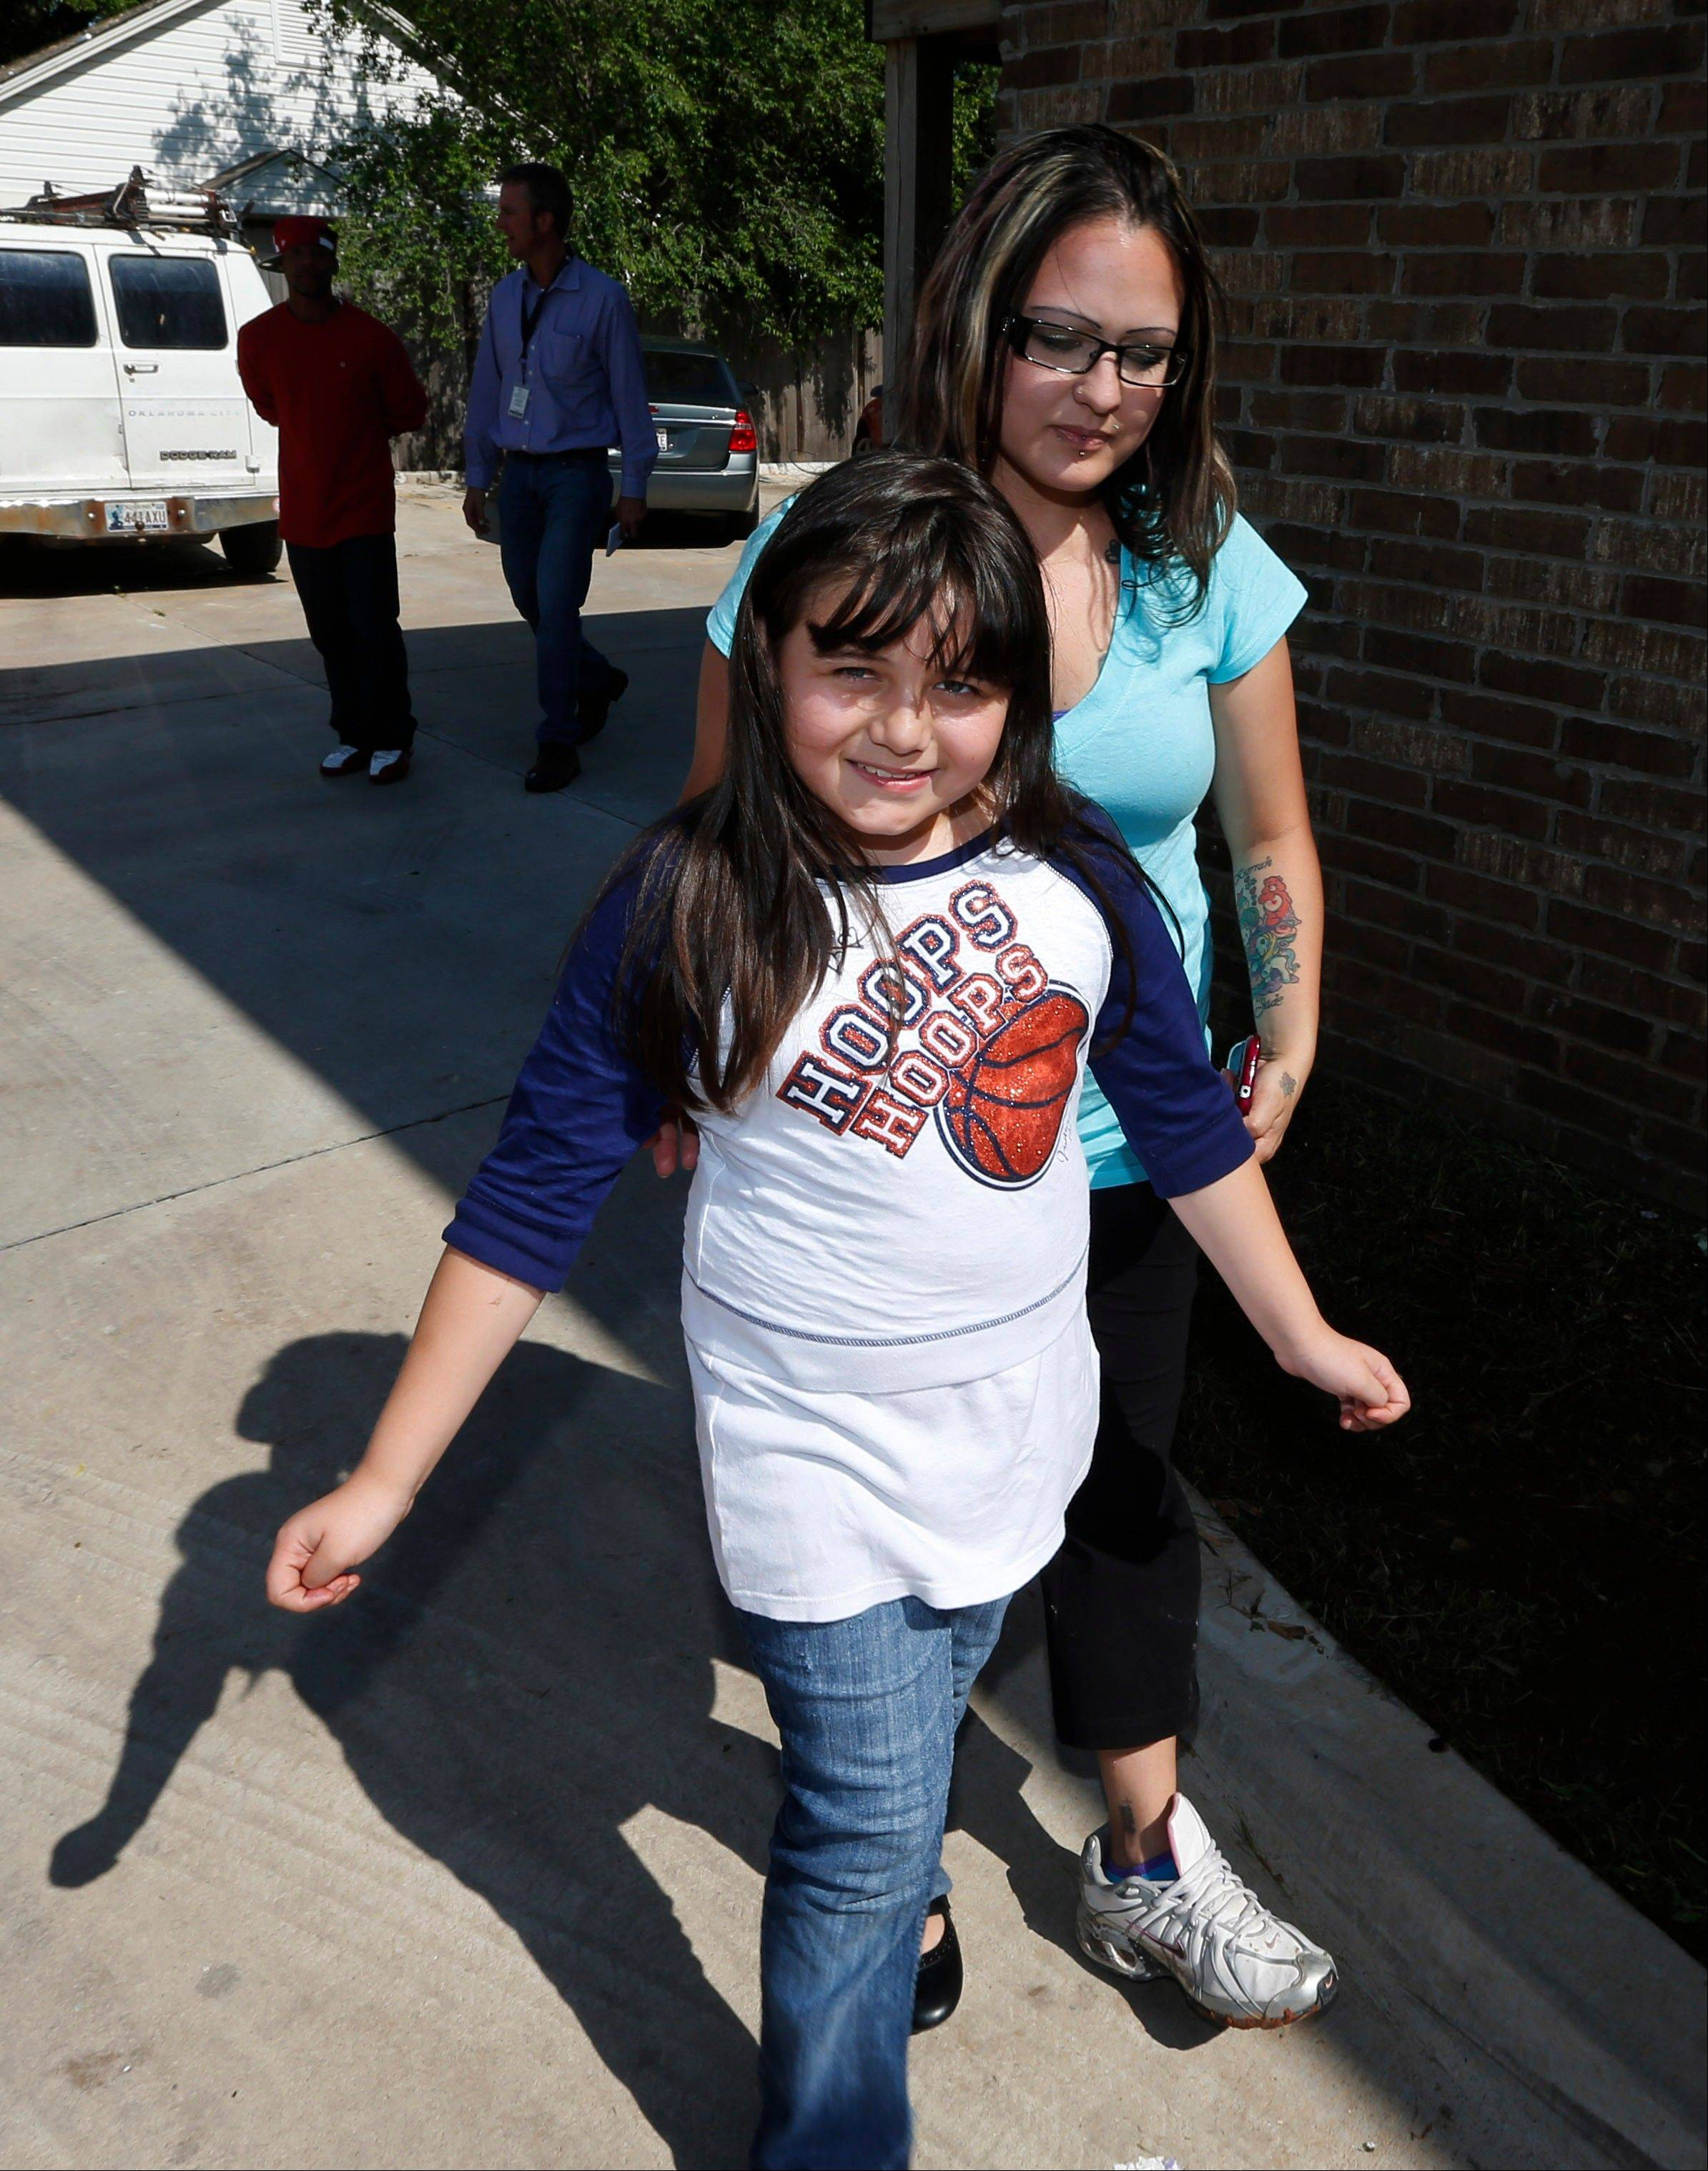 Jazmin Rodriguez, left, smiles as she walks with her mother, LaTisha Garcia, right, following an interview in Moore, Okla., Thursday.